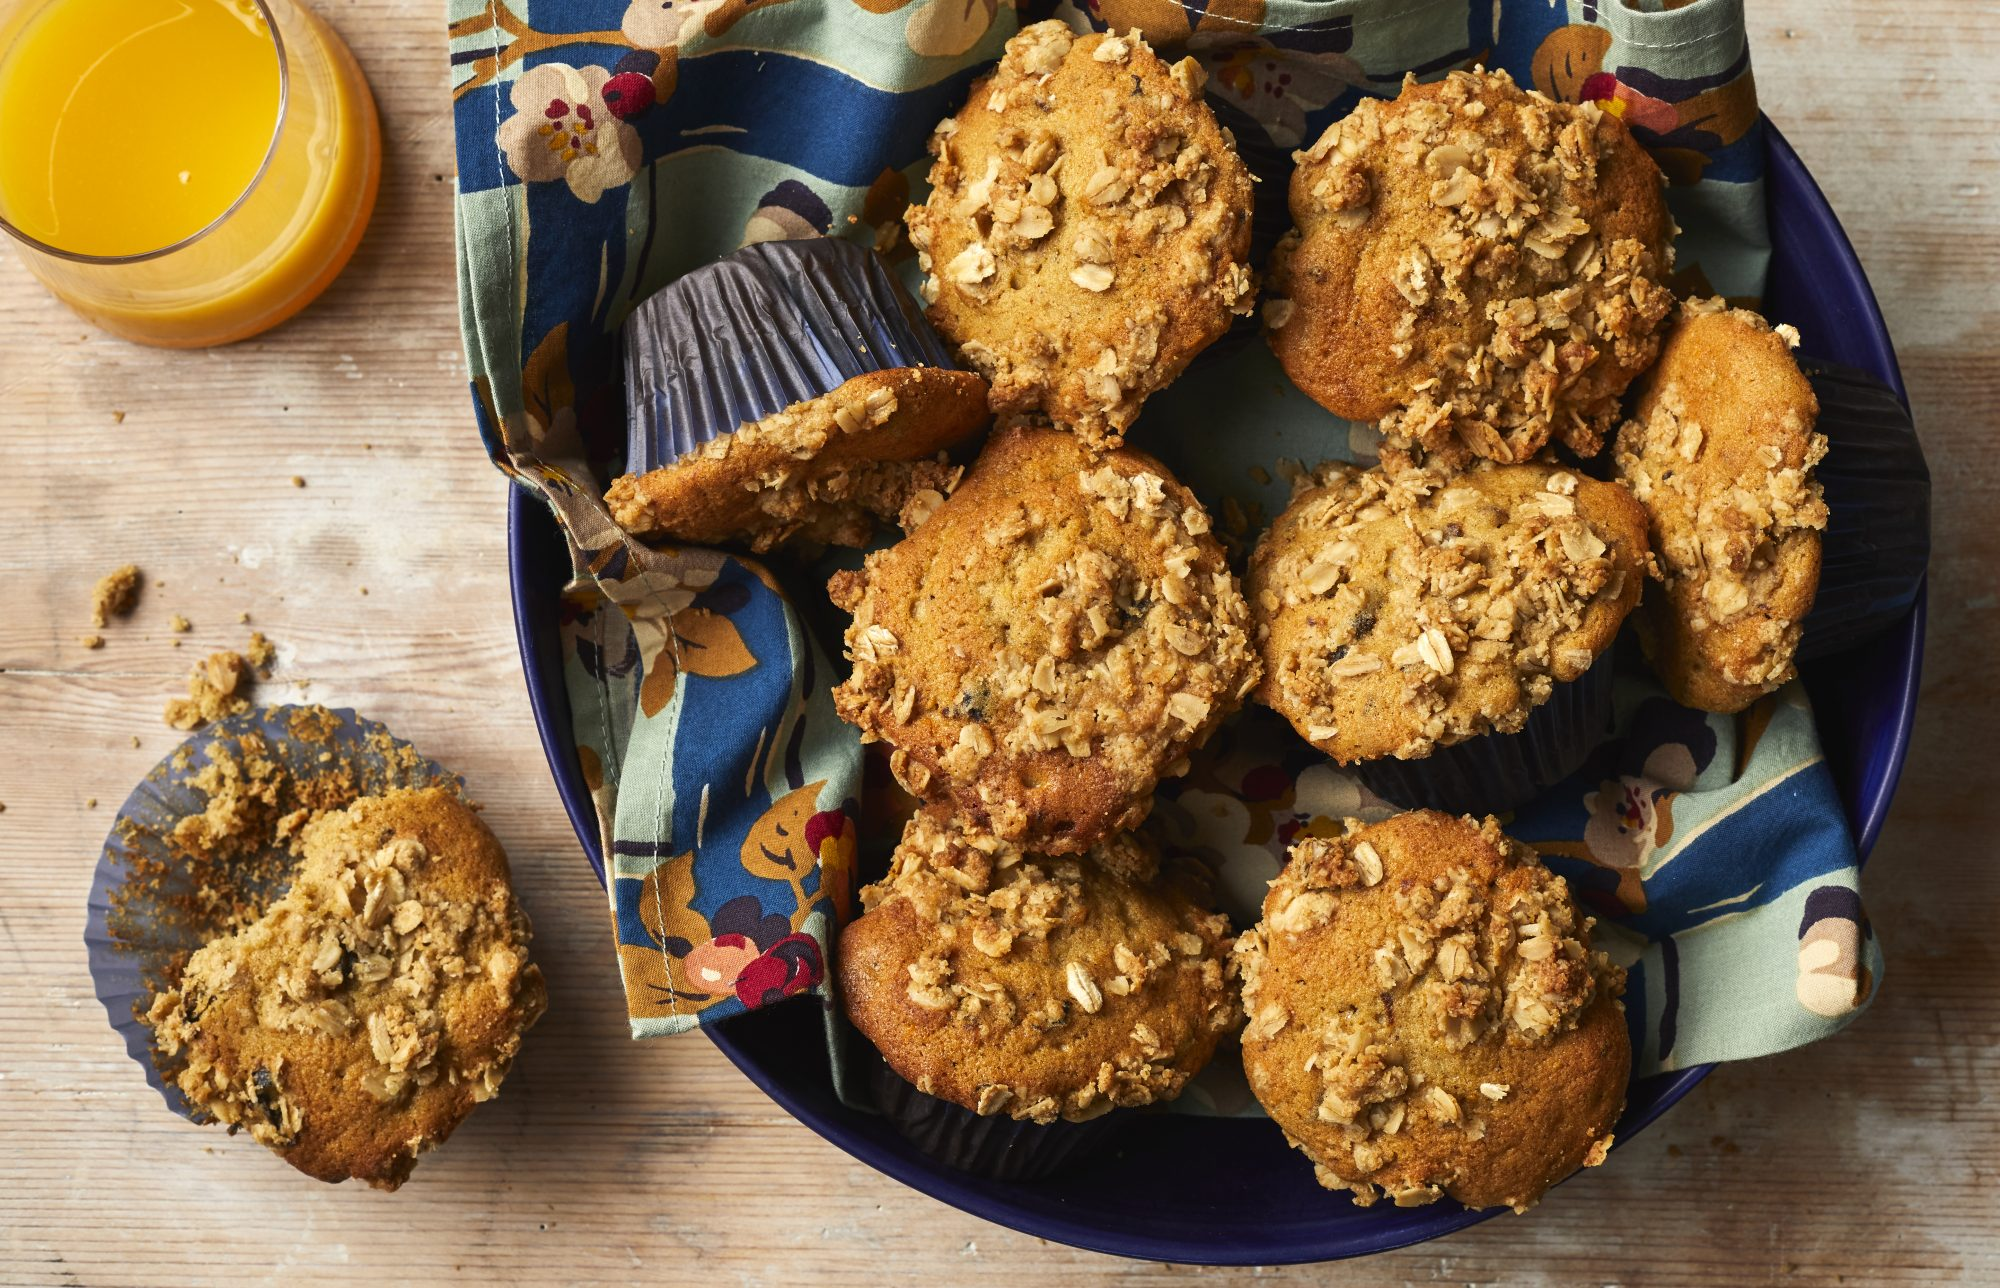 mr-Toasted Oat and Prune Breakfast Muffins image